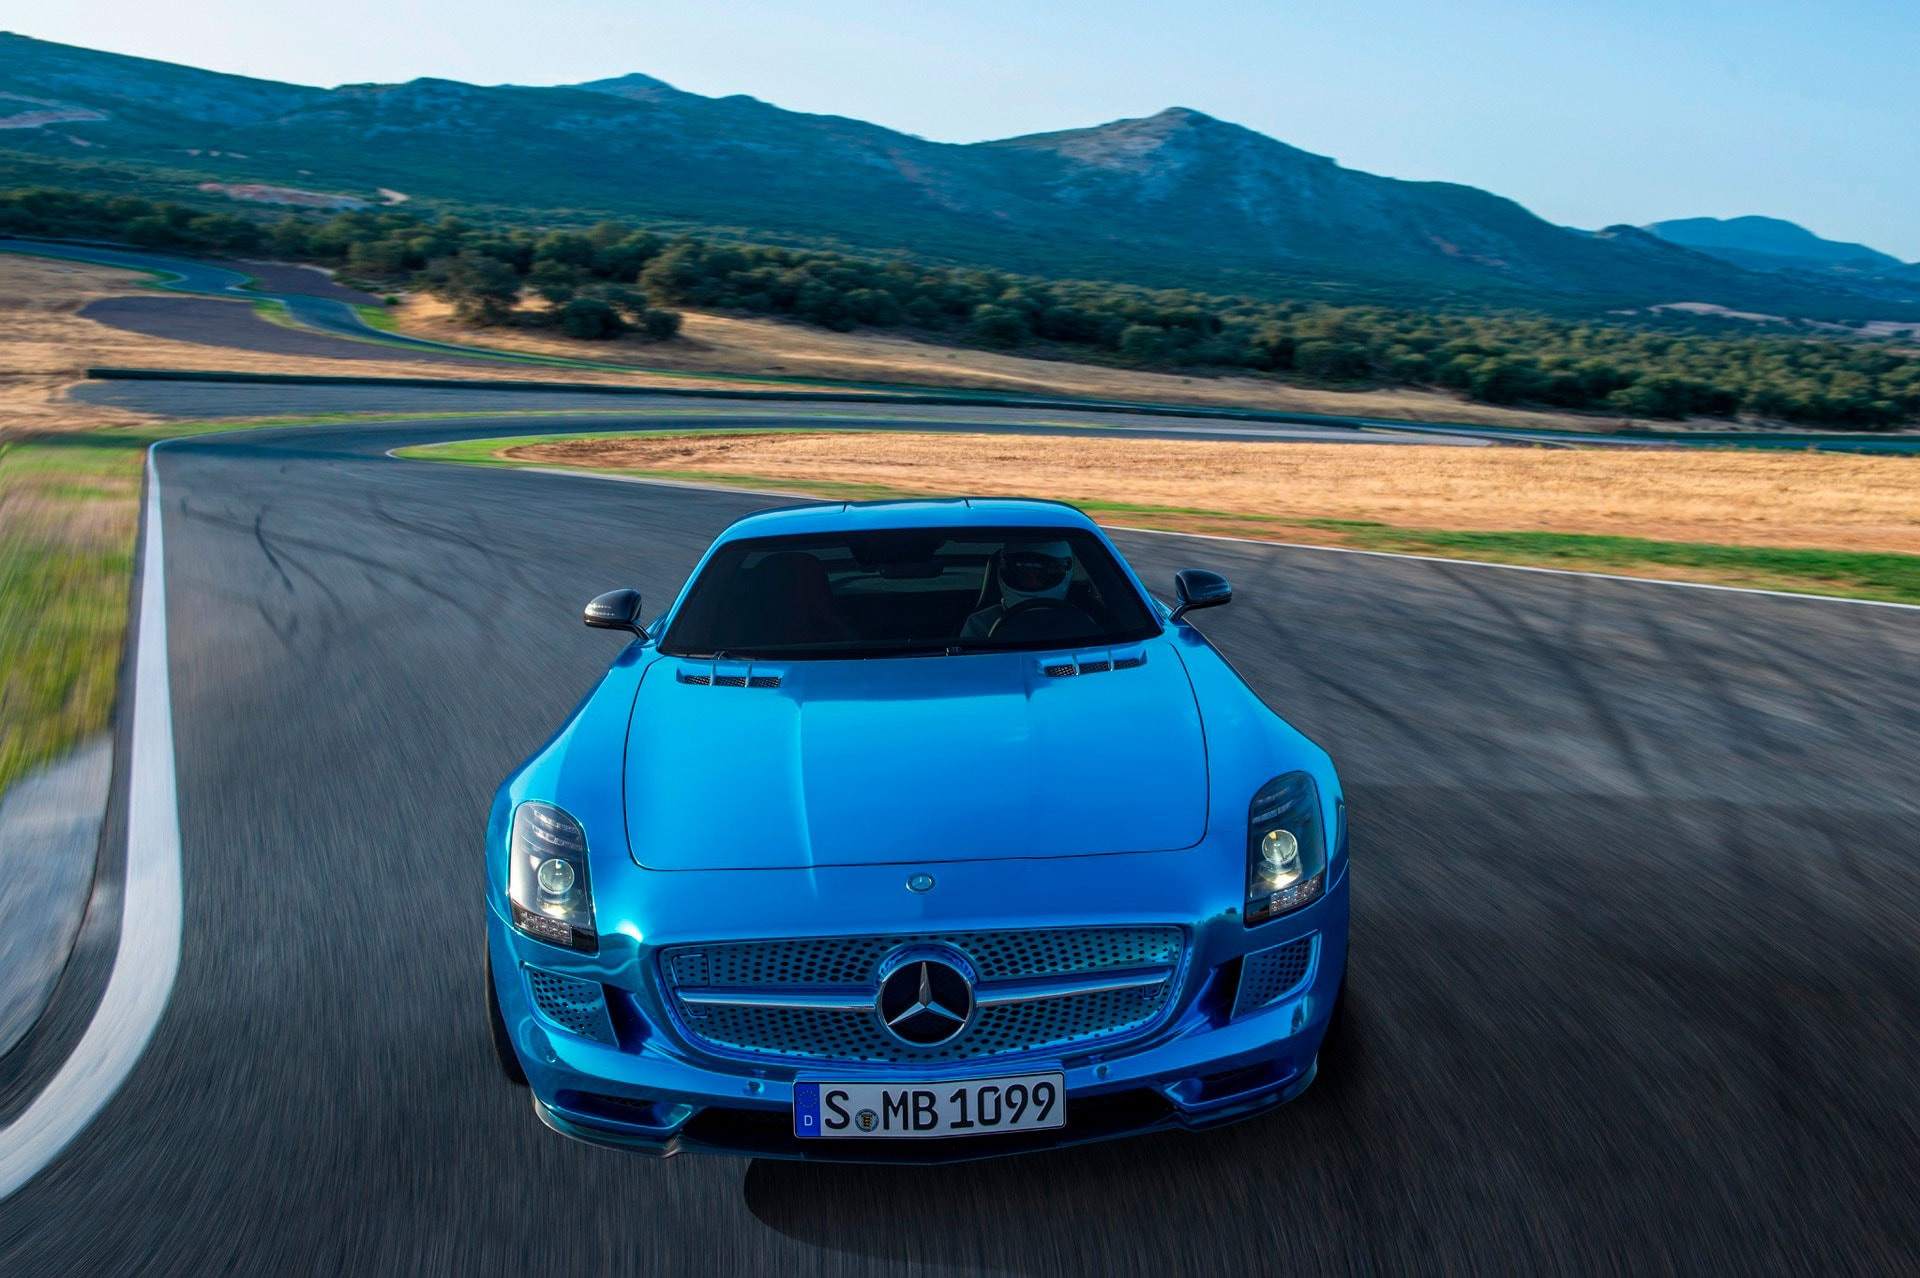 Культовый автомобиль Mercedes-Benz SLS AMG Coupe вид спереди